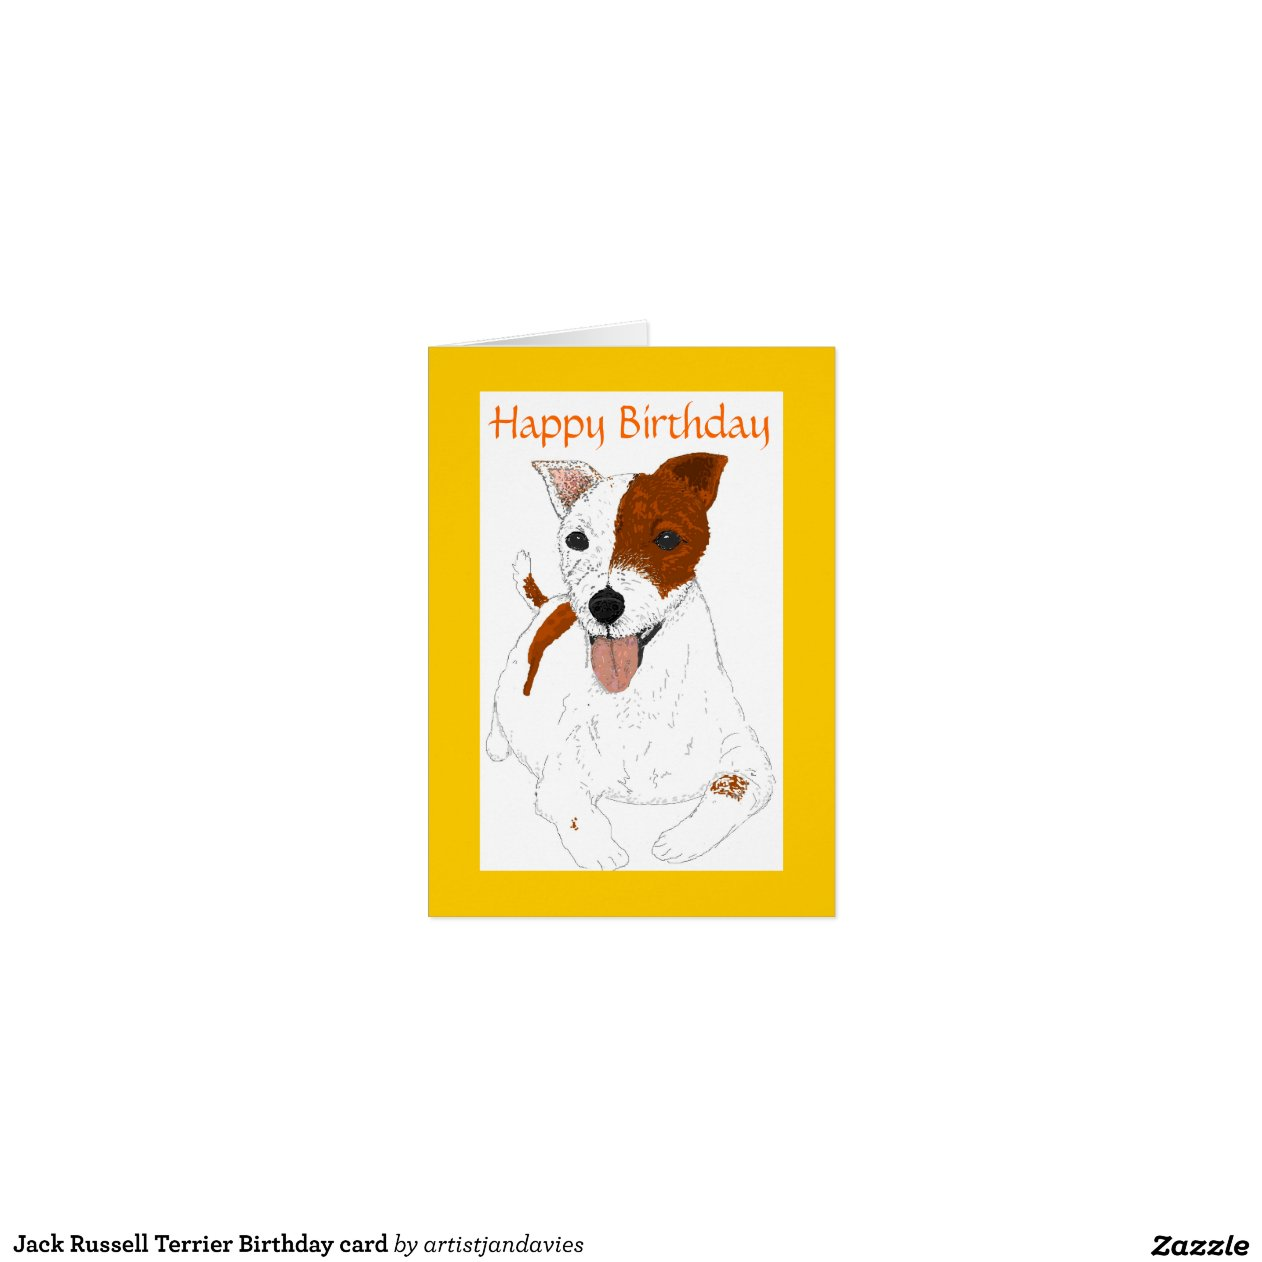 Snap Jack Russell Terrier Cards Photo Card Templates Invitations